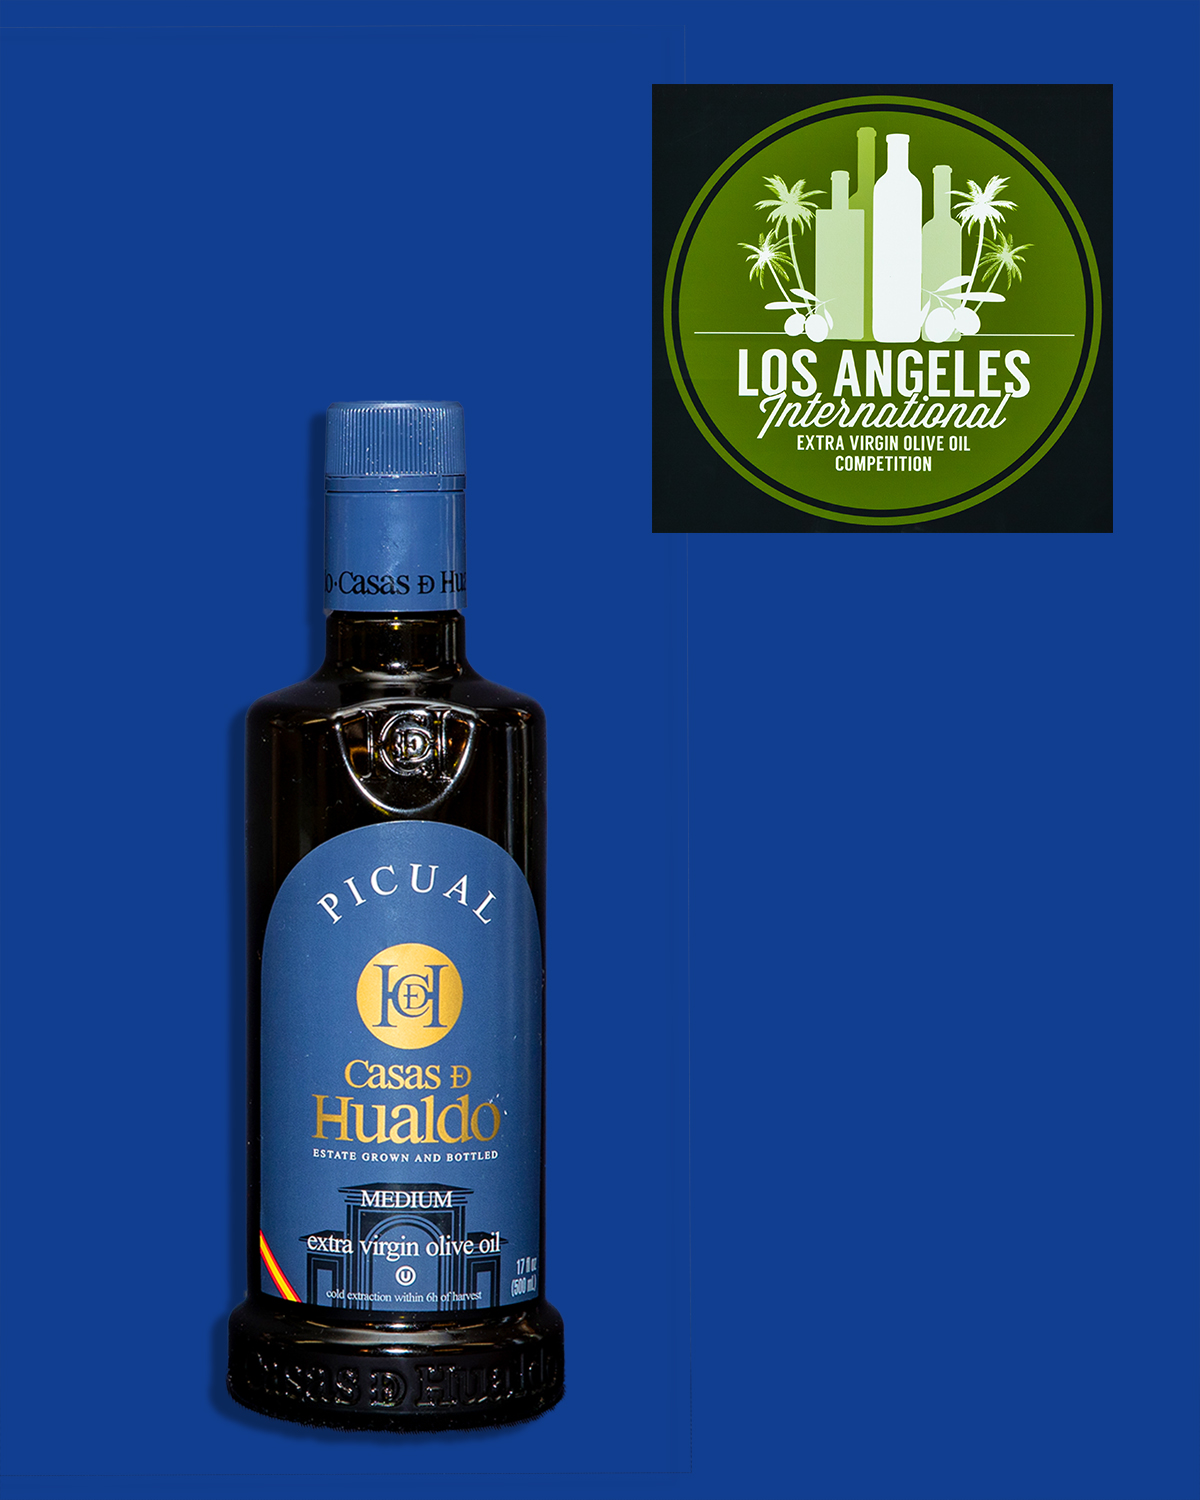 Risultati immagini per Casas De Hualdo, Picual Los Angeles International Extra Virgin Olive Oil Competition 2019